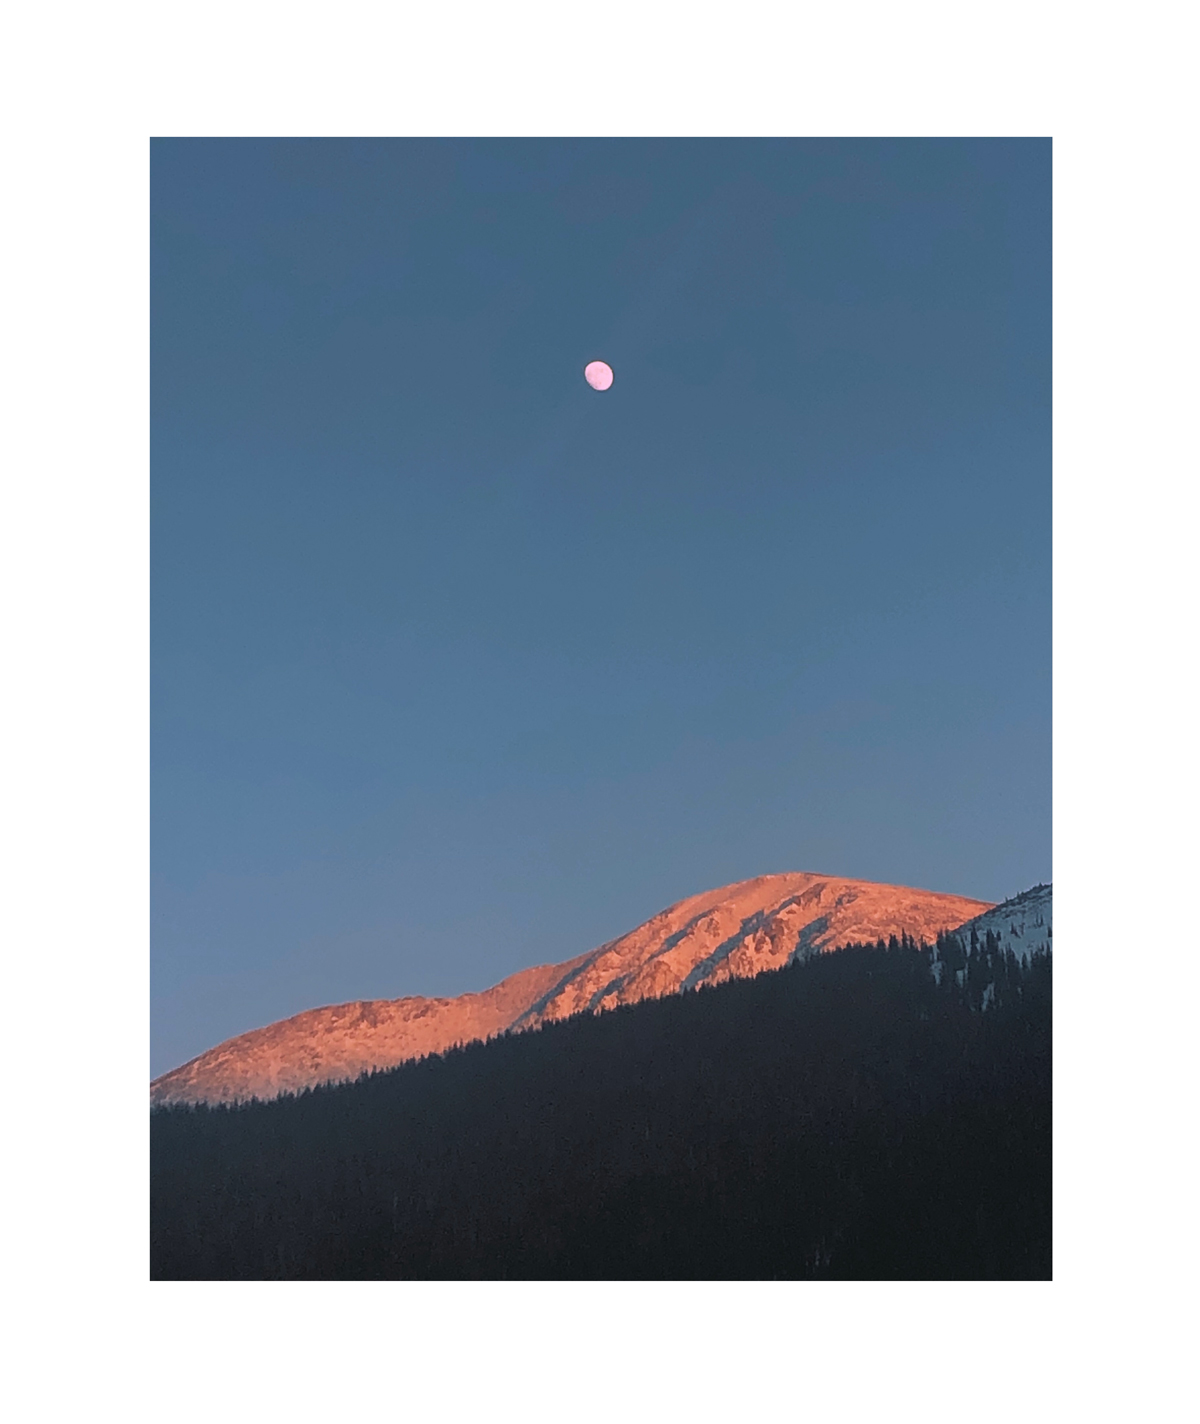 Photo of moon above snow-capped mountains by Molly Olwig